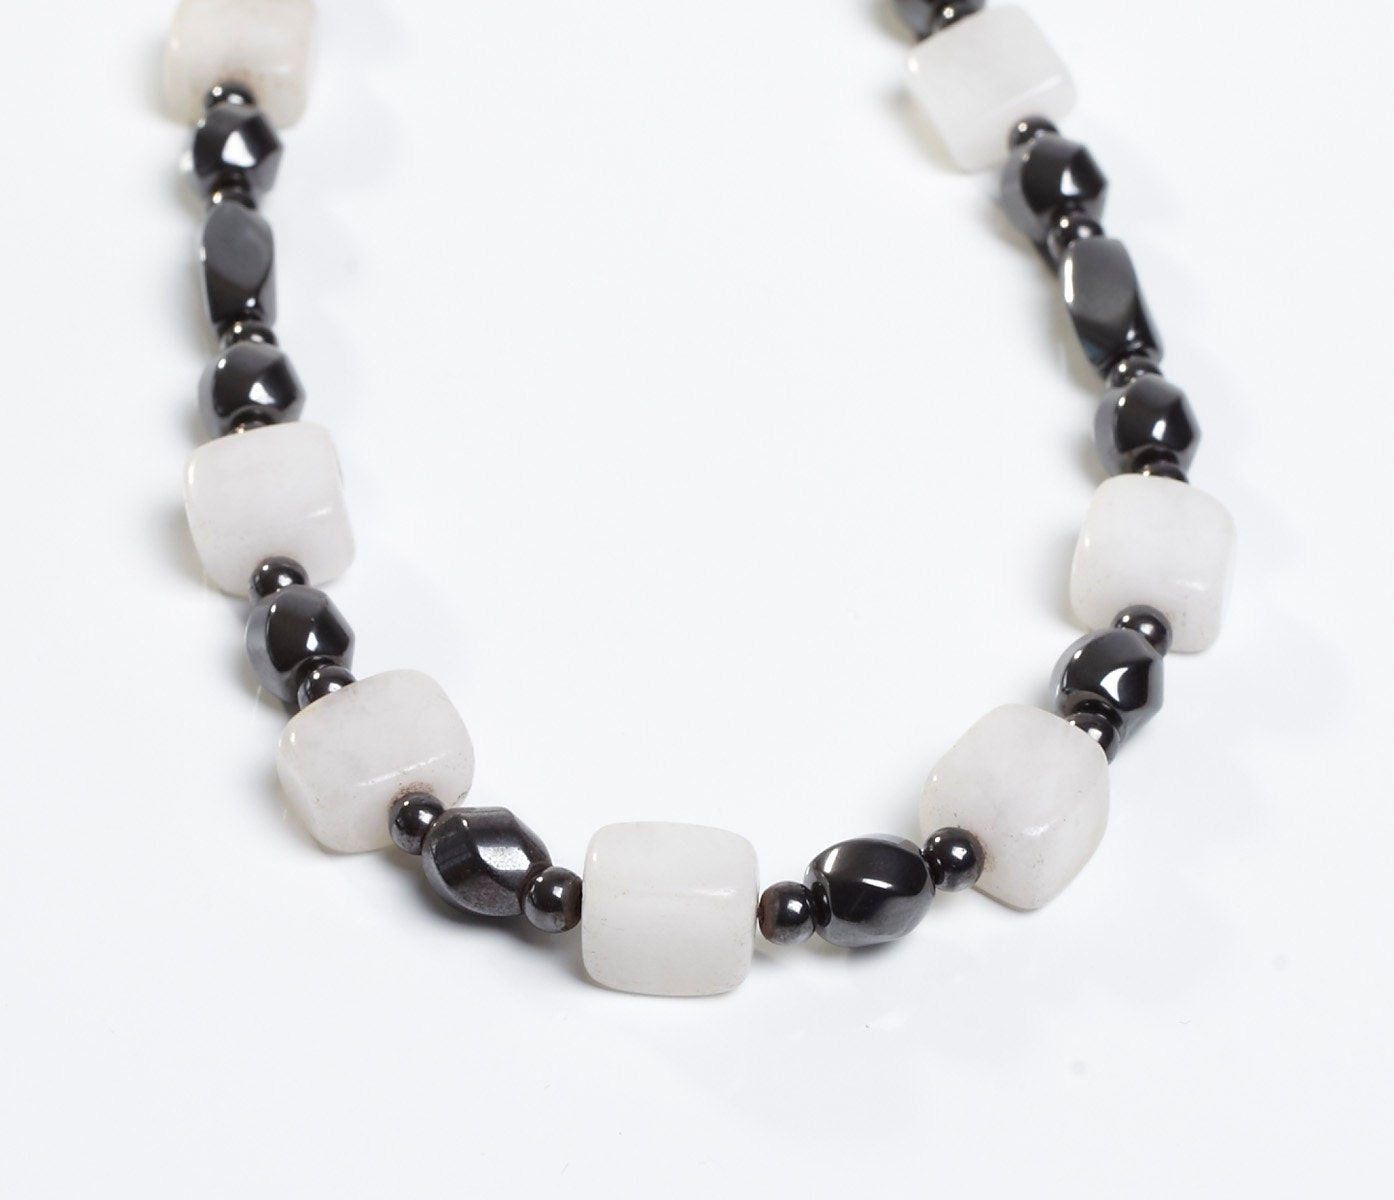 white glass bead accents on a magnetic necklace ooak by happy